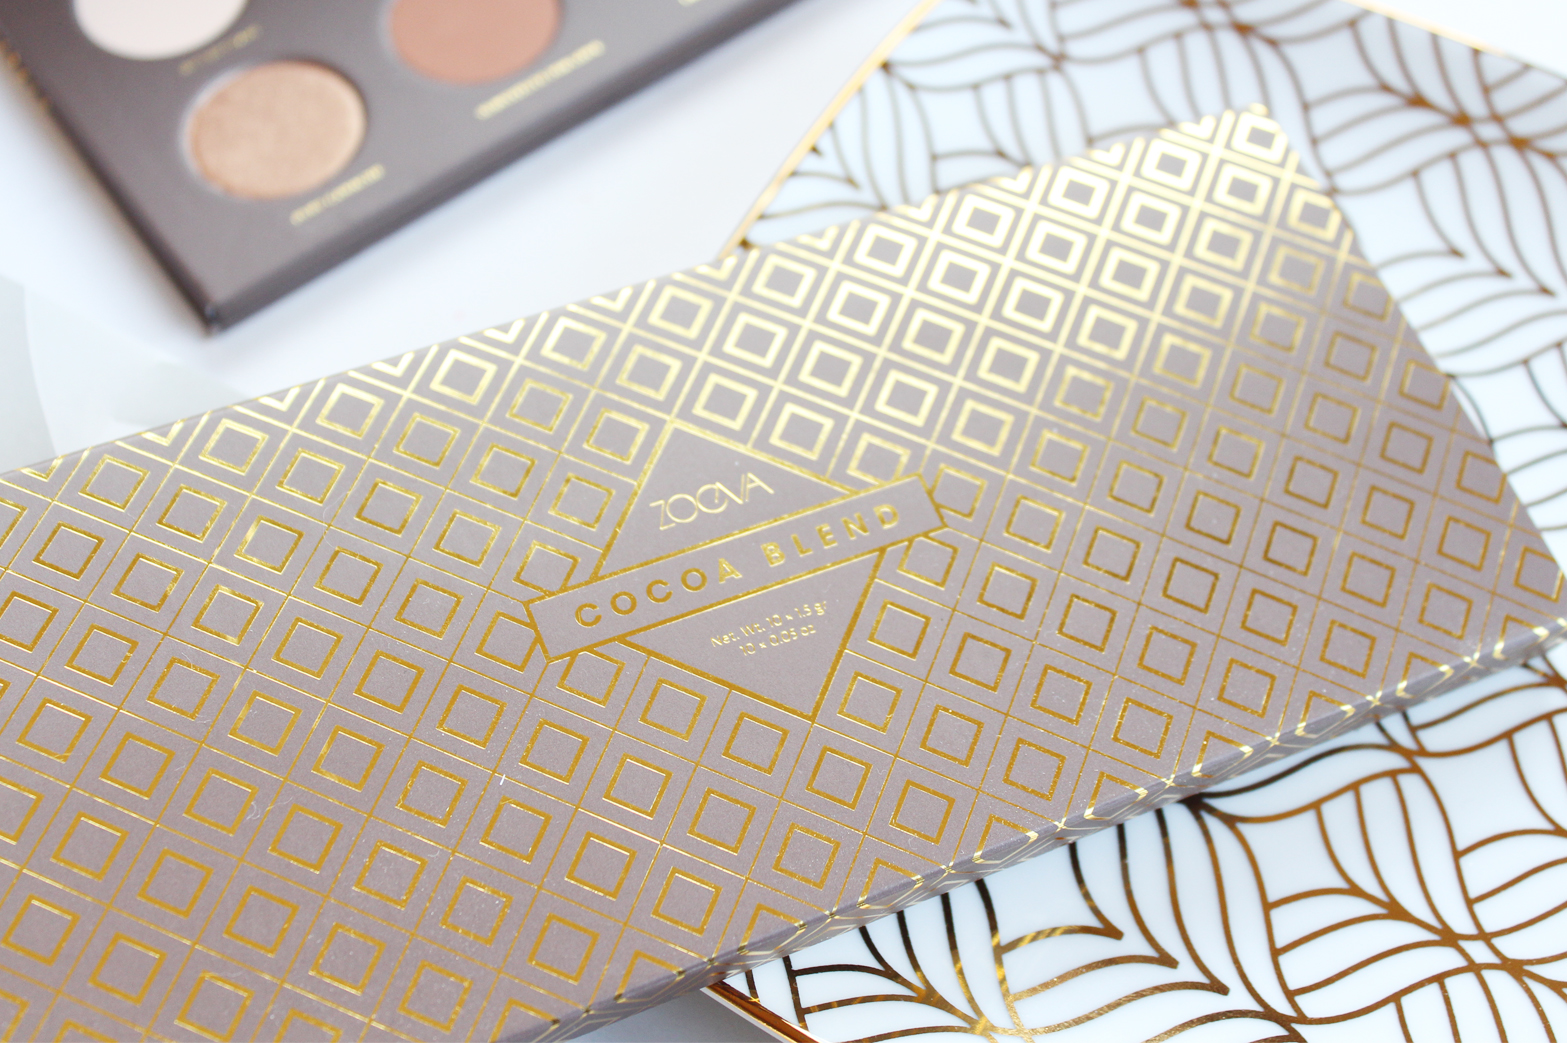 ZOEVA | Cocoa Blend Eyeshadow Palette - Review + Swatches - CassandraMyee